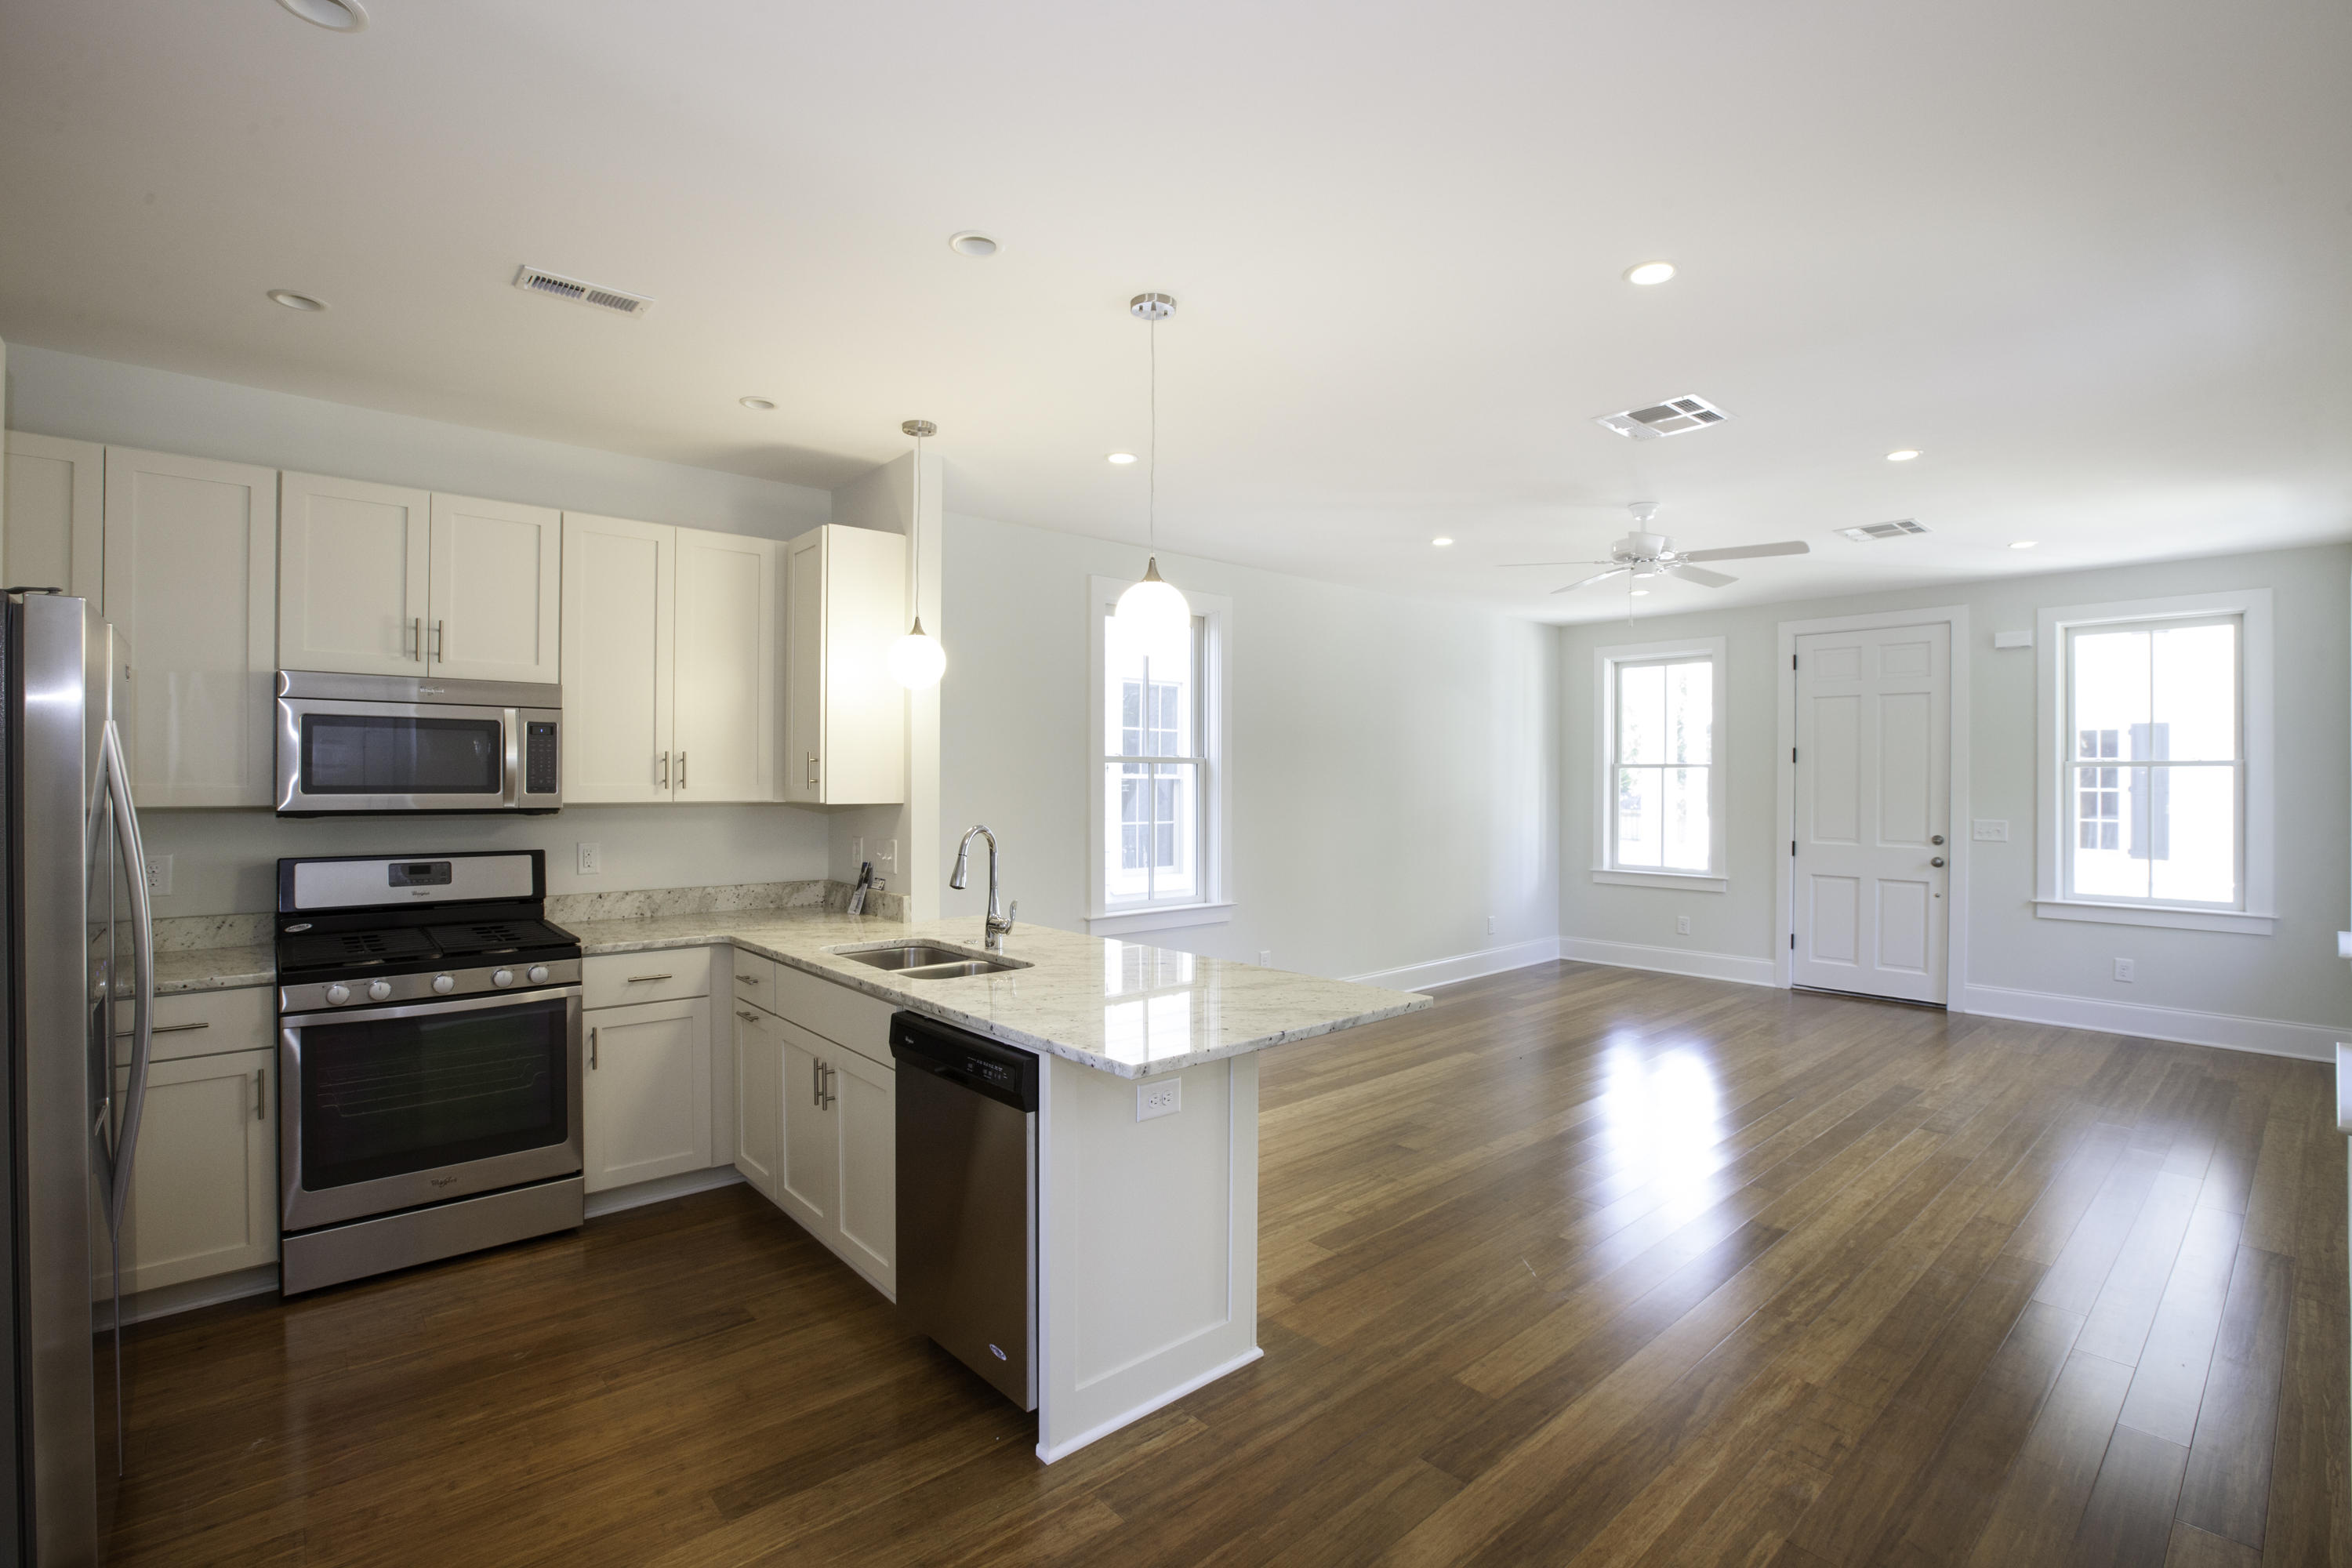 Home for sale 30 Dereef Court, Morris Square, Downtown Charleston, SC